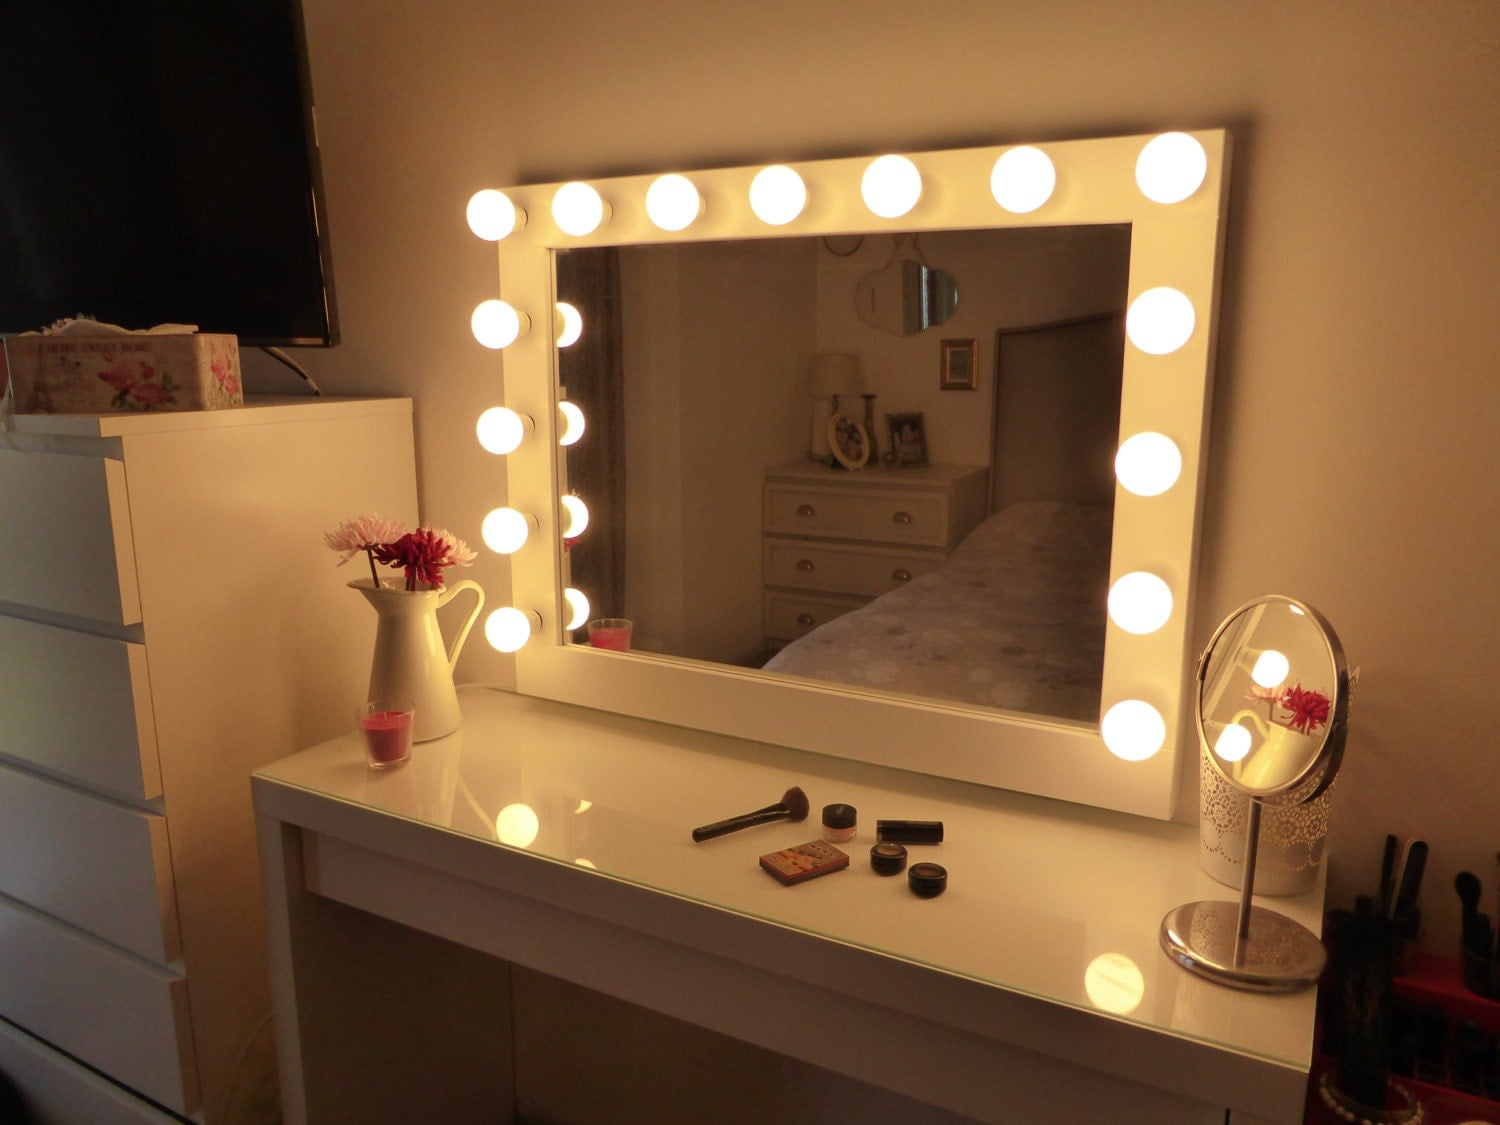 Wall Vanity Mirror With Lights hollywood lighted vanity mirror-large makeup mirror with